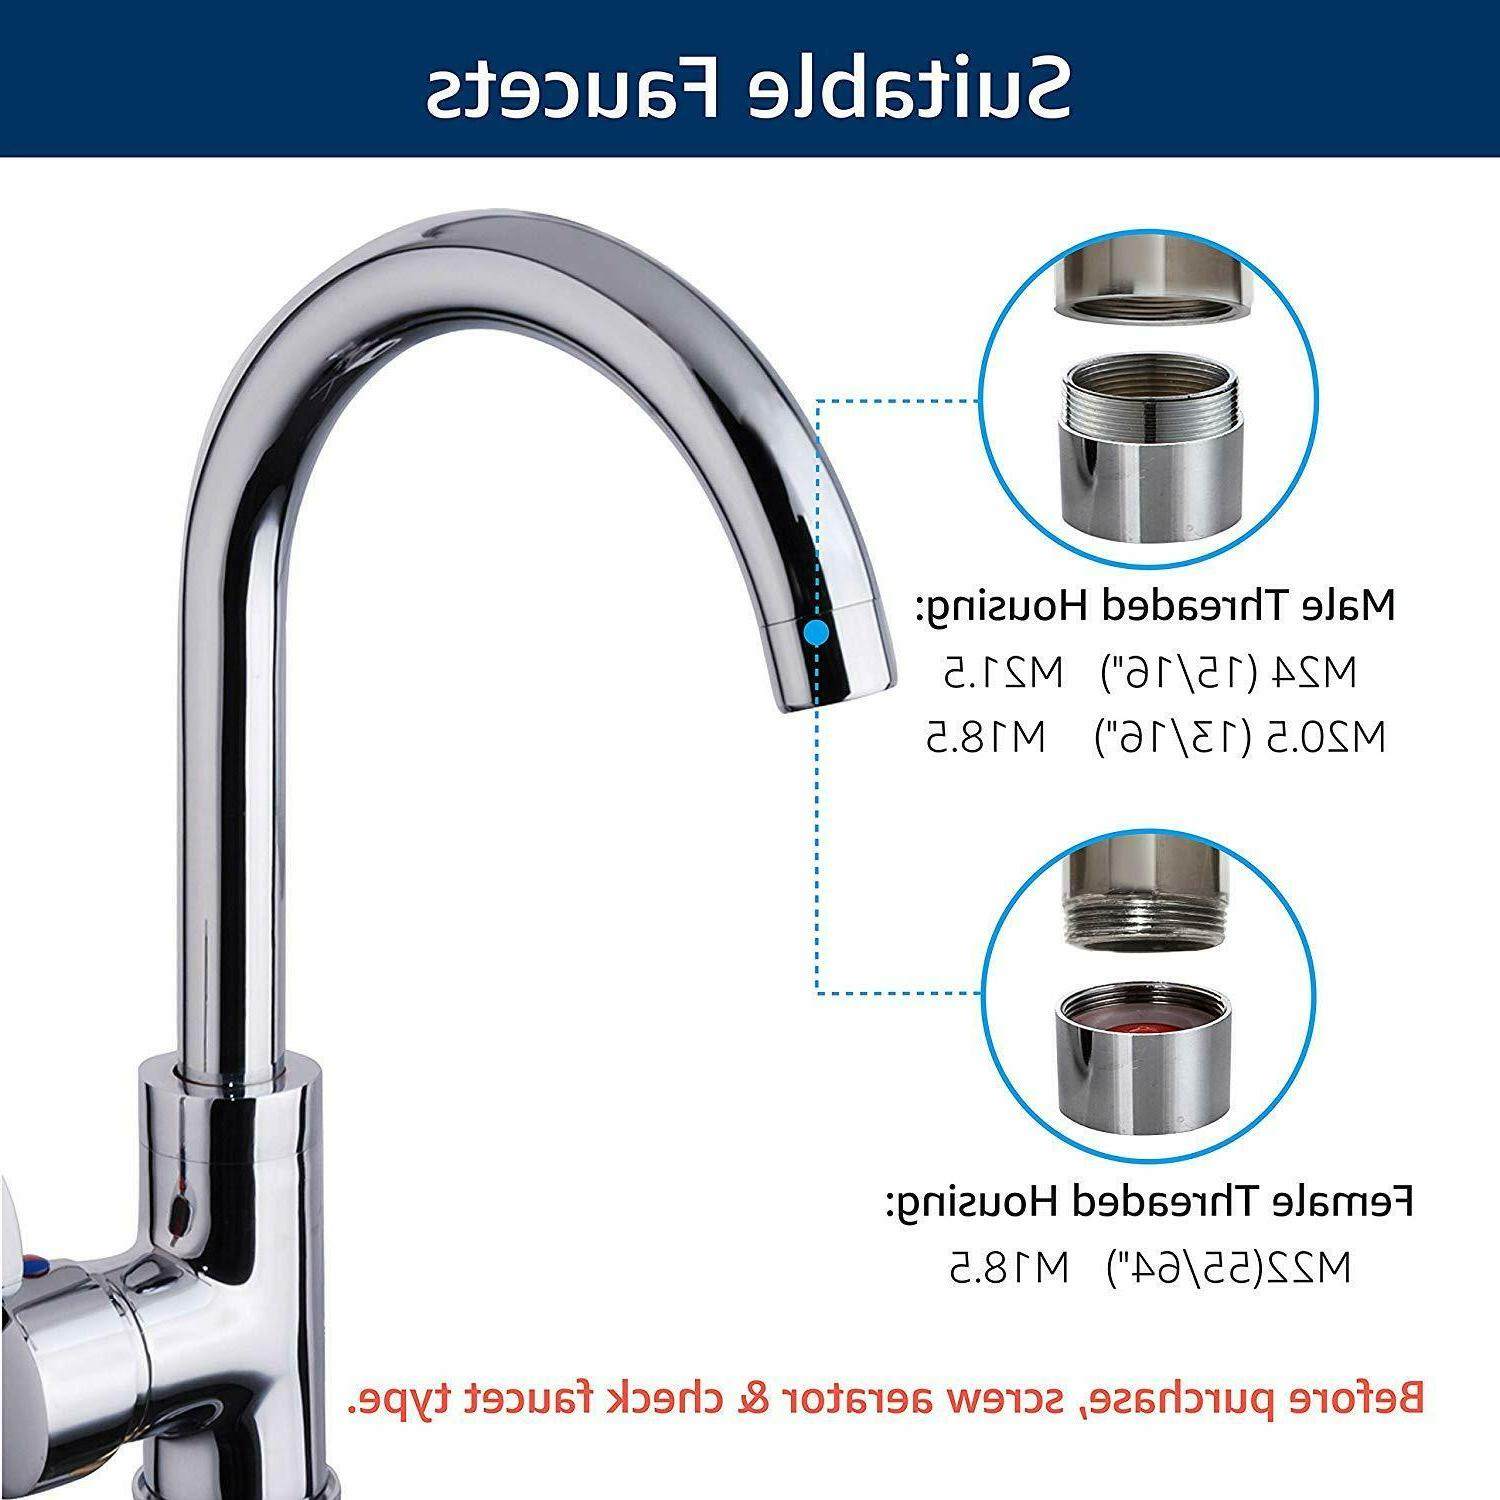 Faucet Water Water Filter, Lead, Flouride & Chlorine Fits